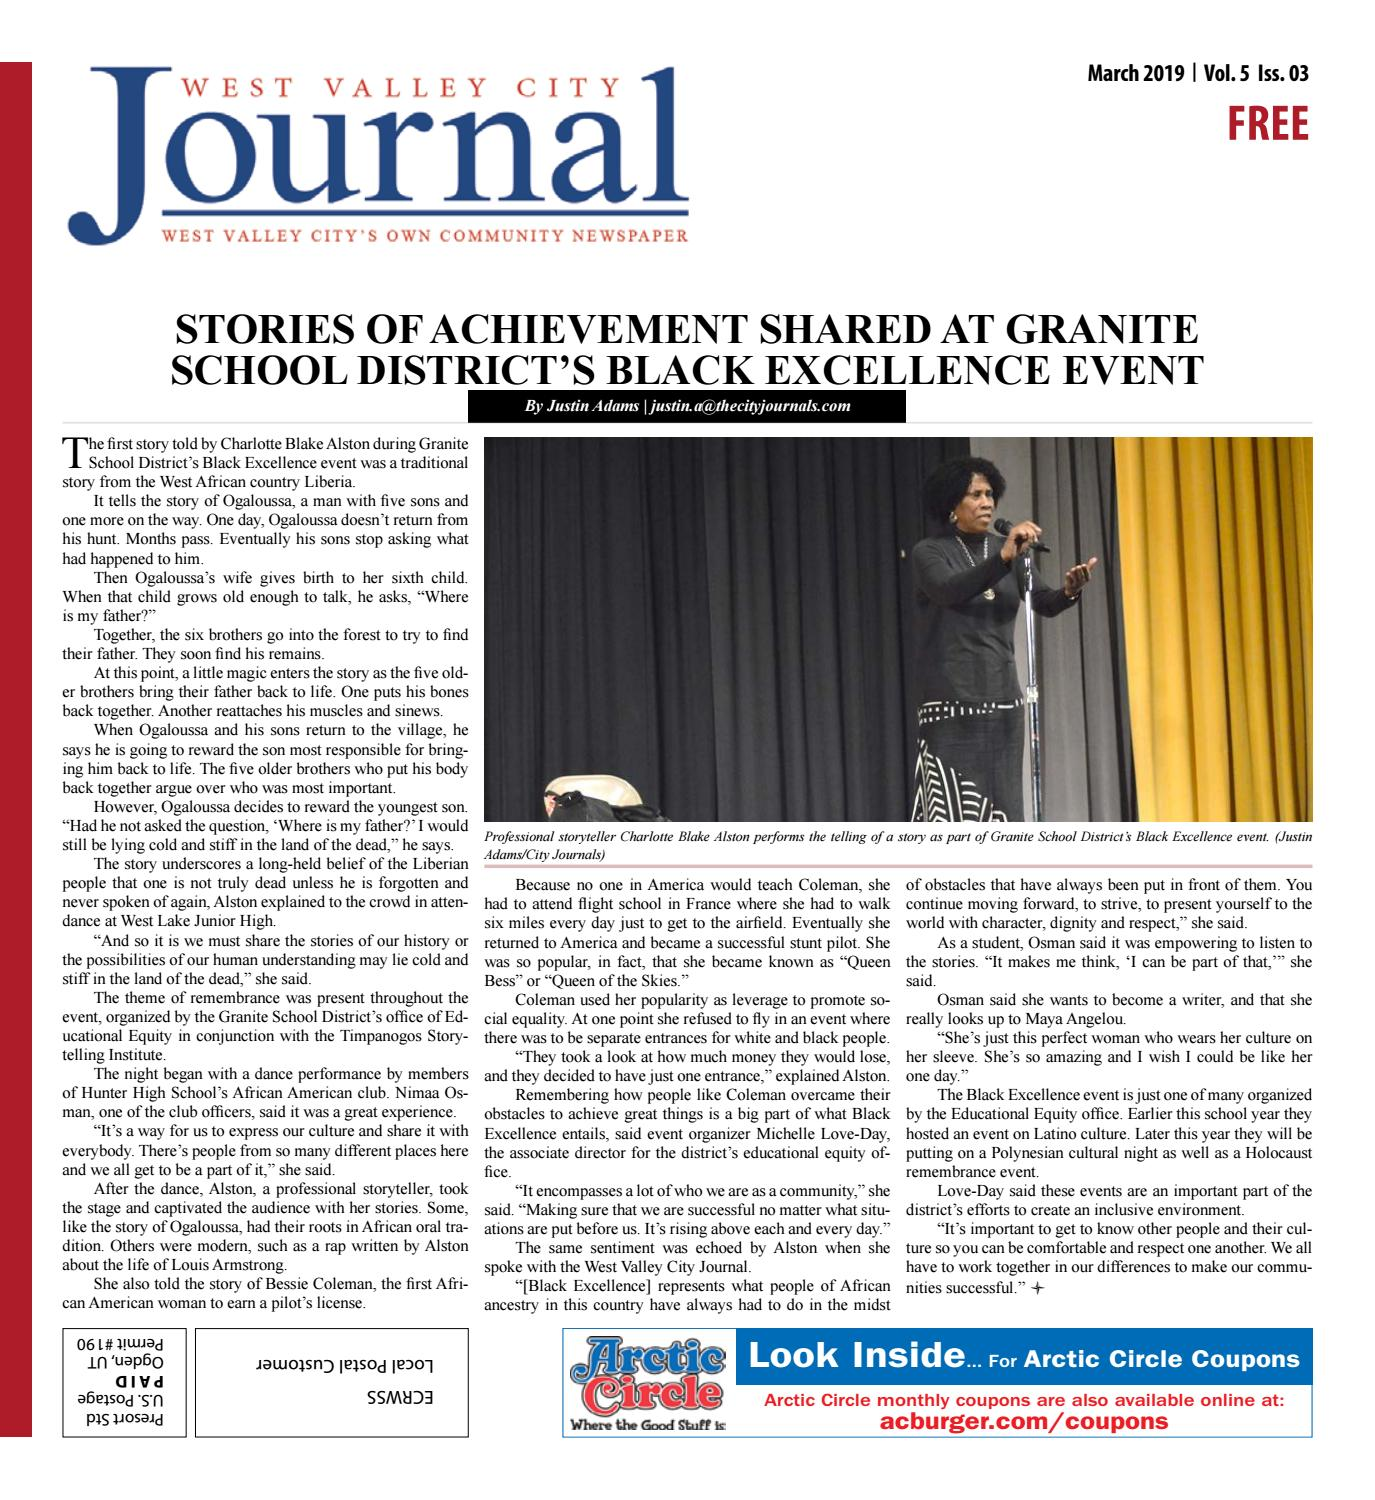 West Valley City Journal March 2019 by The City Journals - issuu